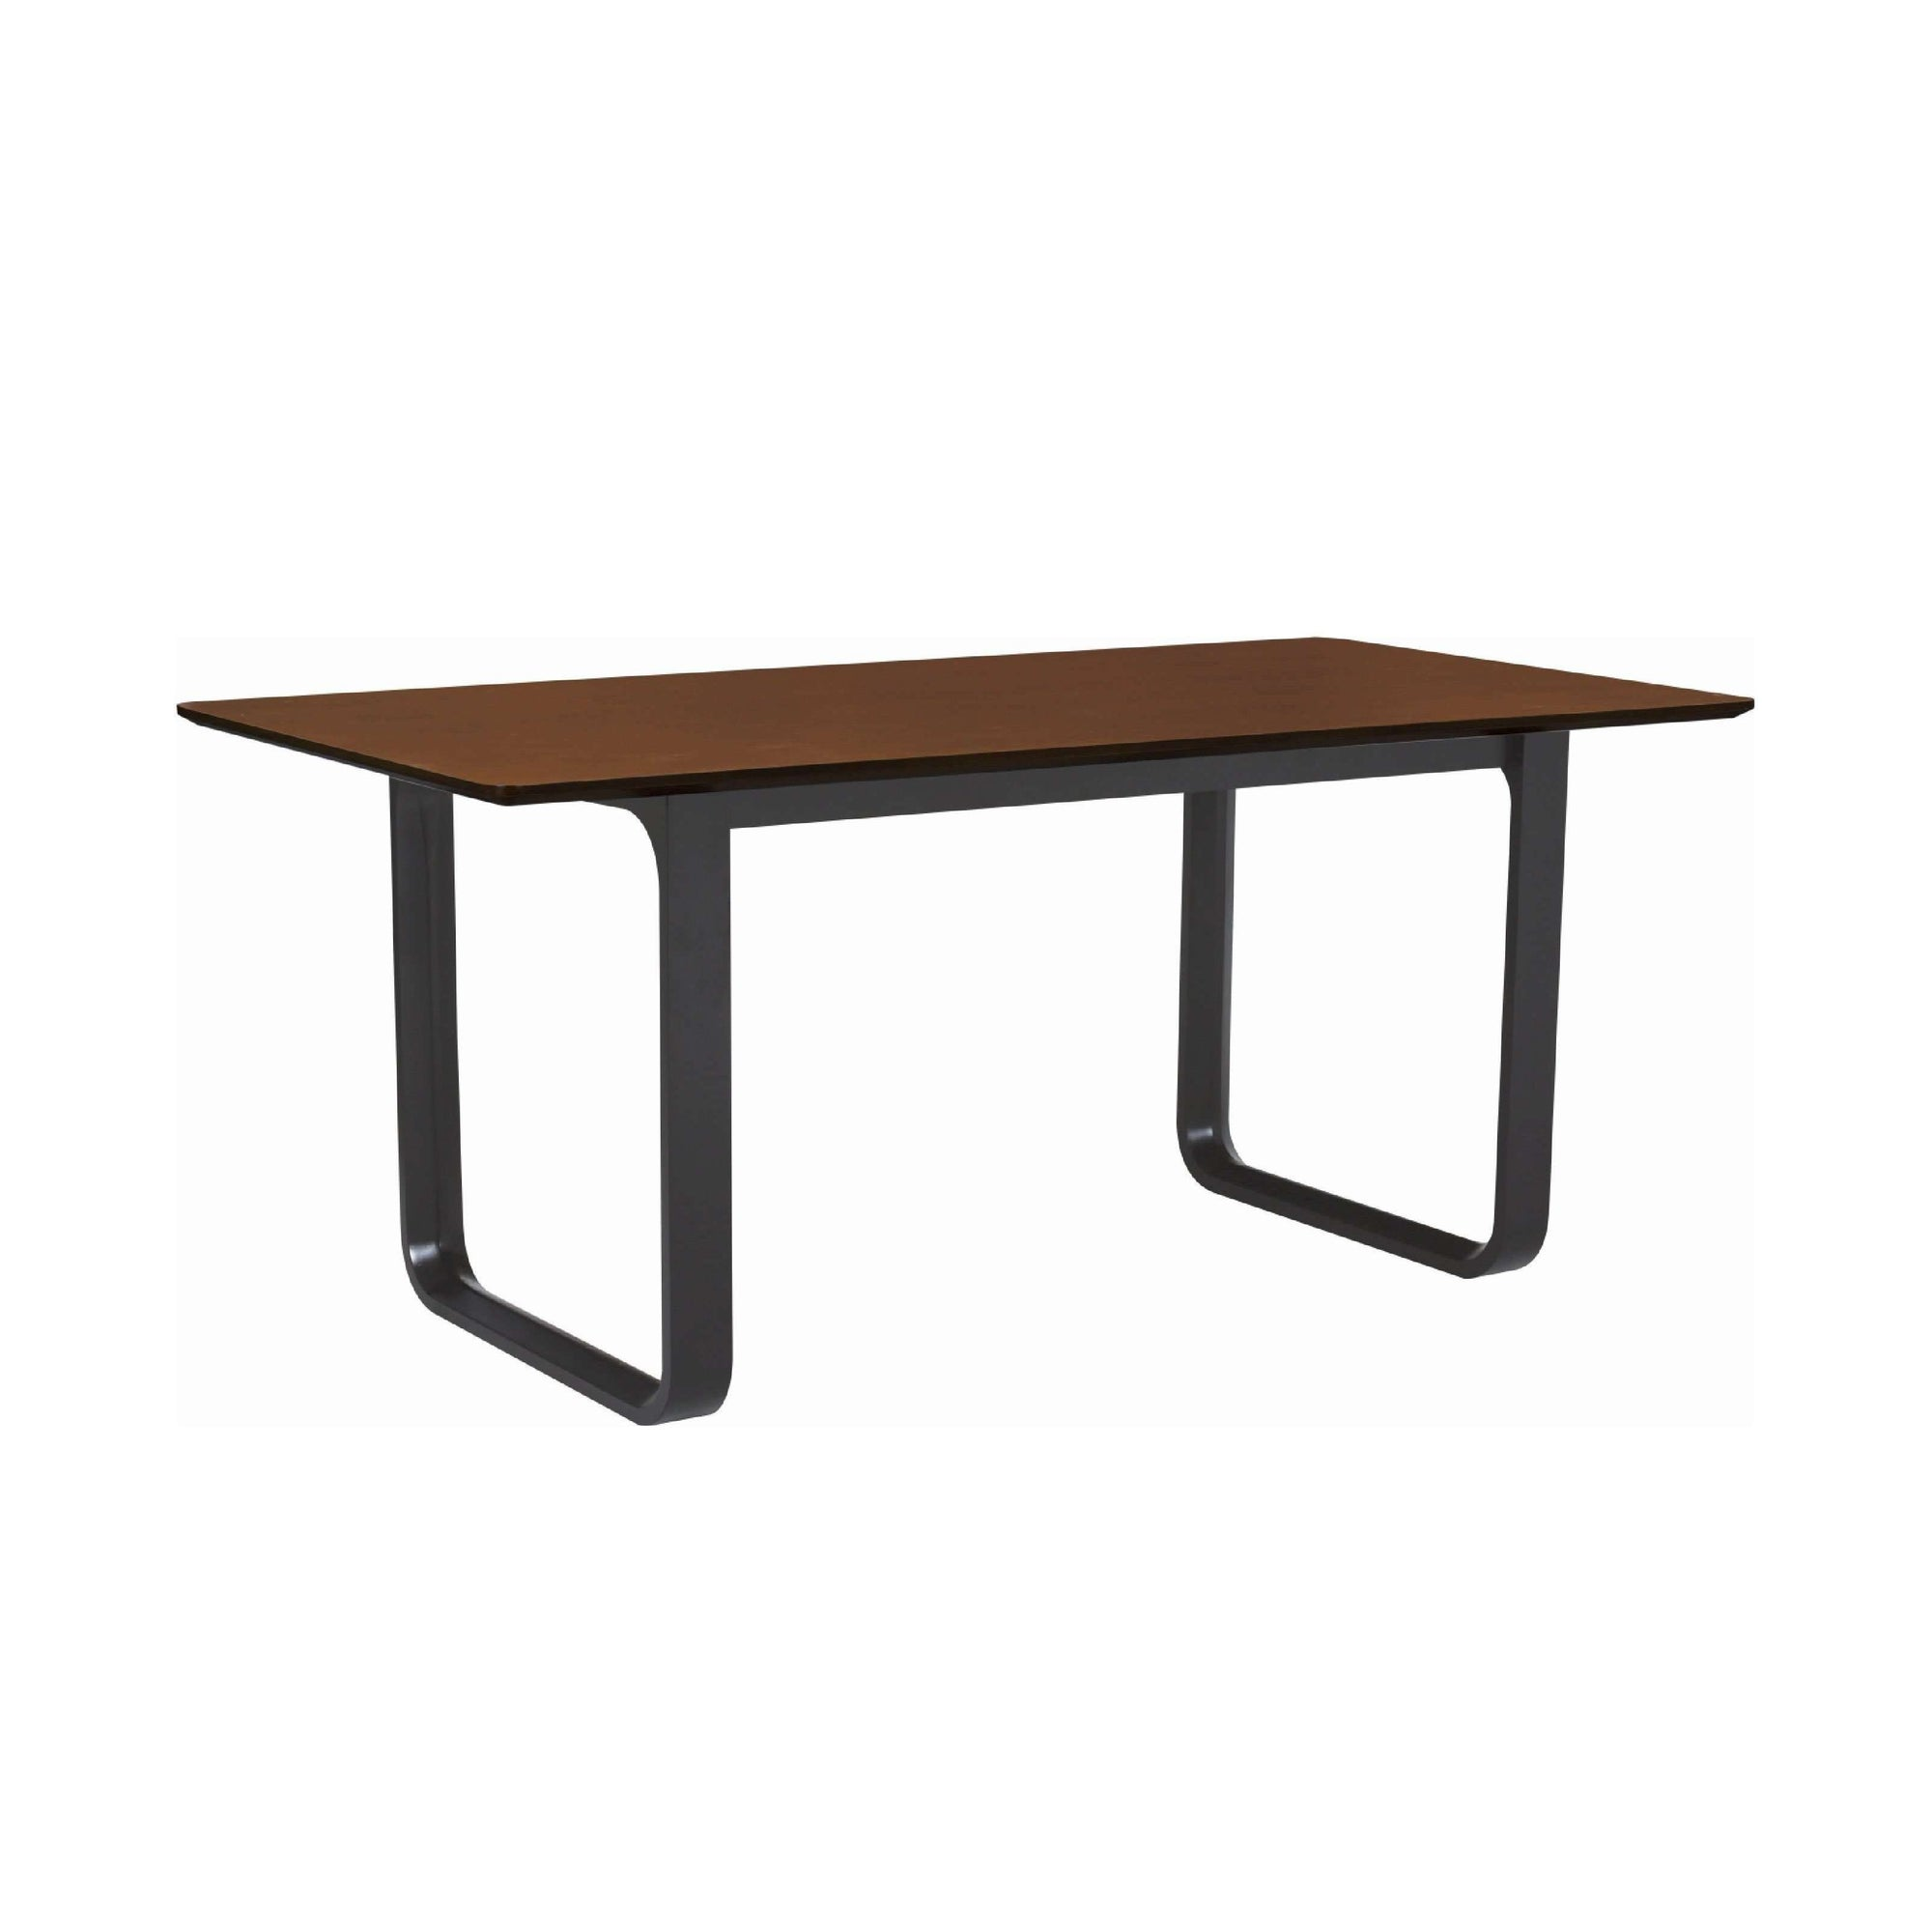 ULMER 1.8m Dining Table in Black colour leg, Walnut Laminate Top